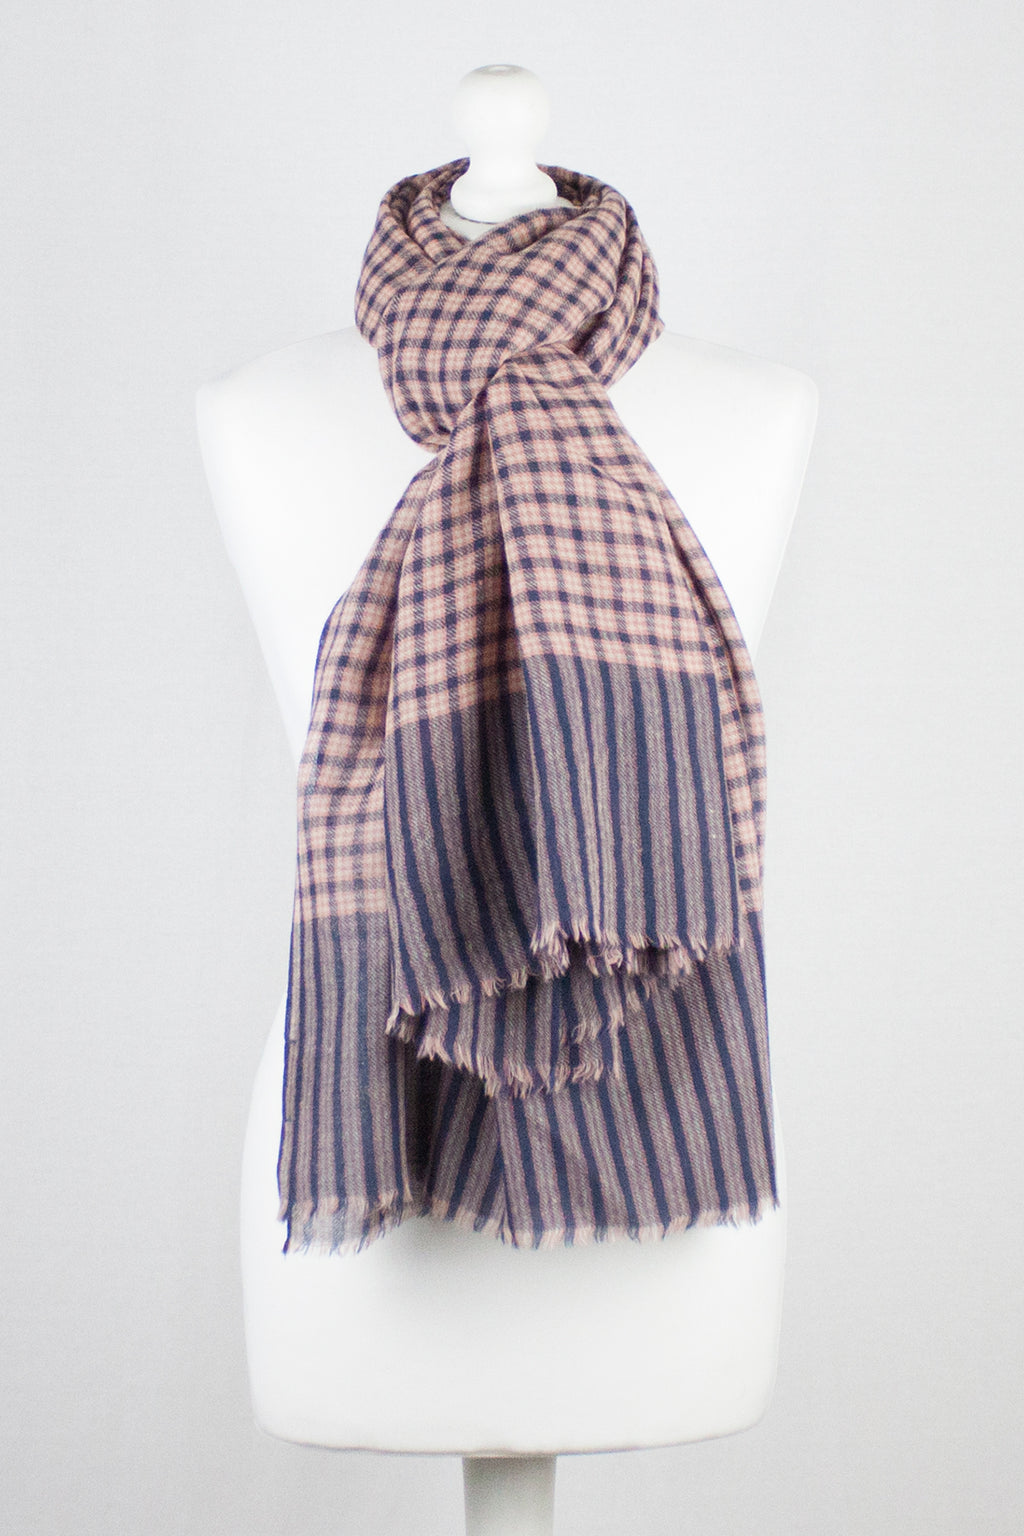 Box Checks w/ Stripe Border Merino Wool Scarf - Black Coral